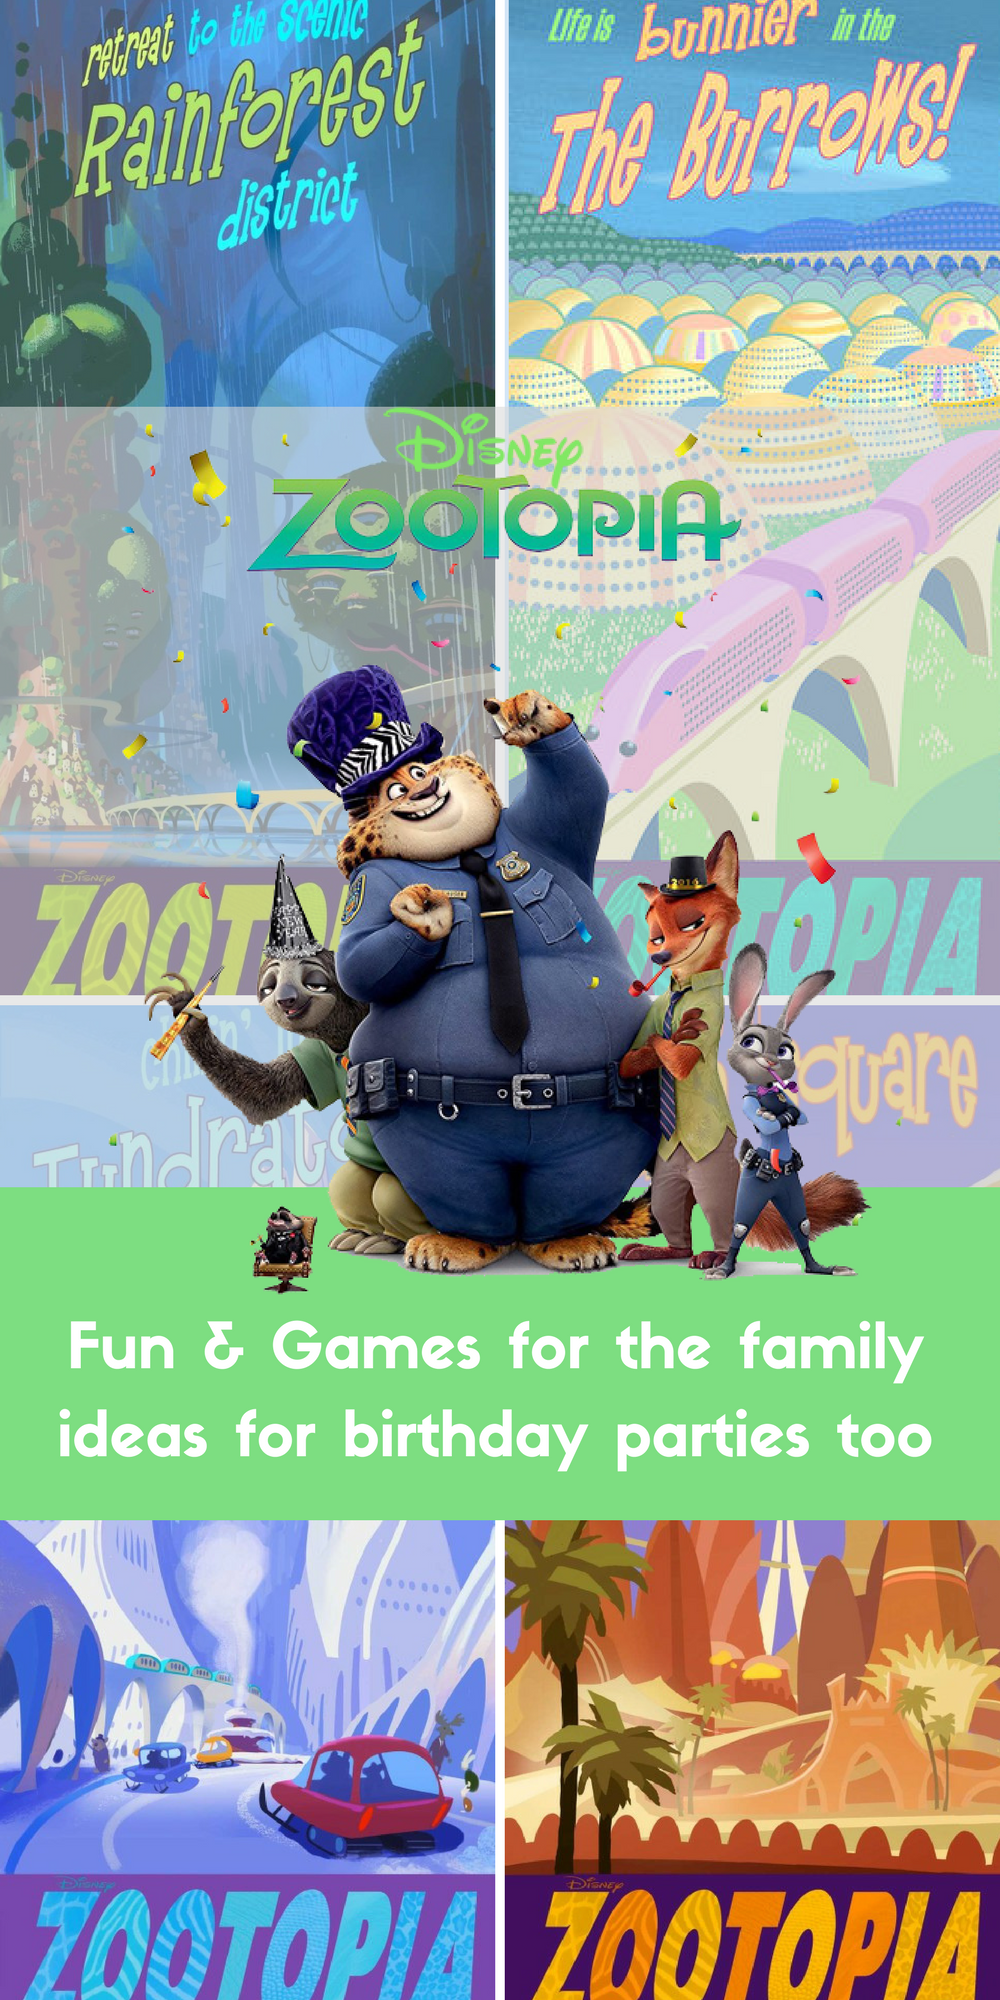 Zootopia Fun on Wonder Kids